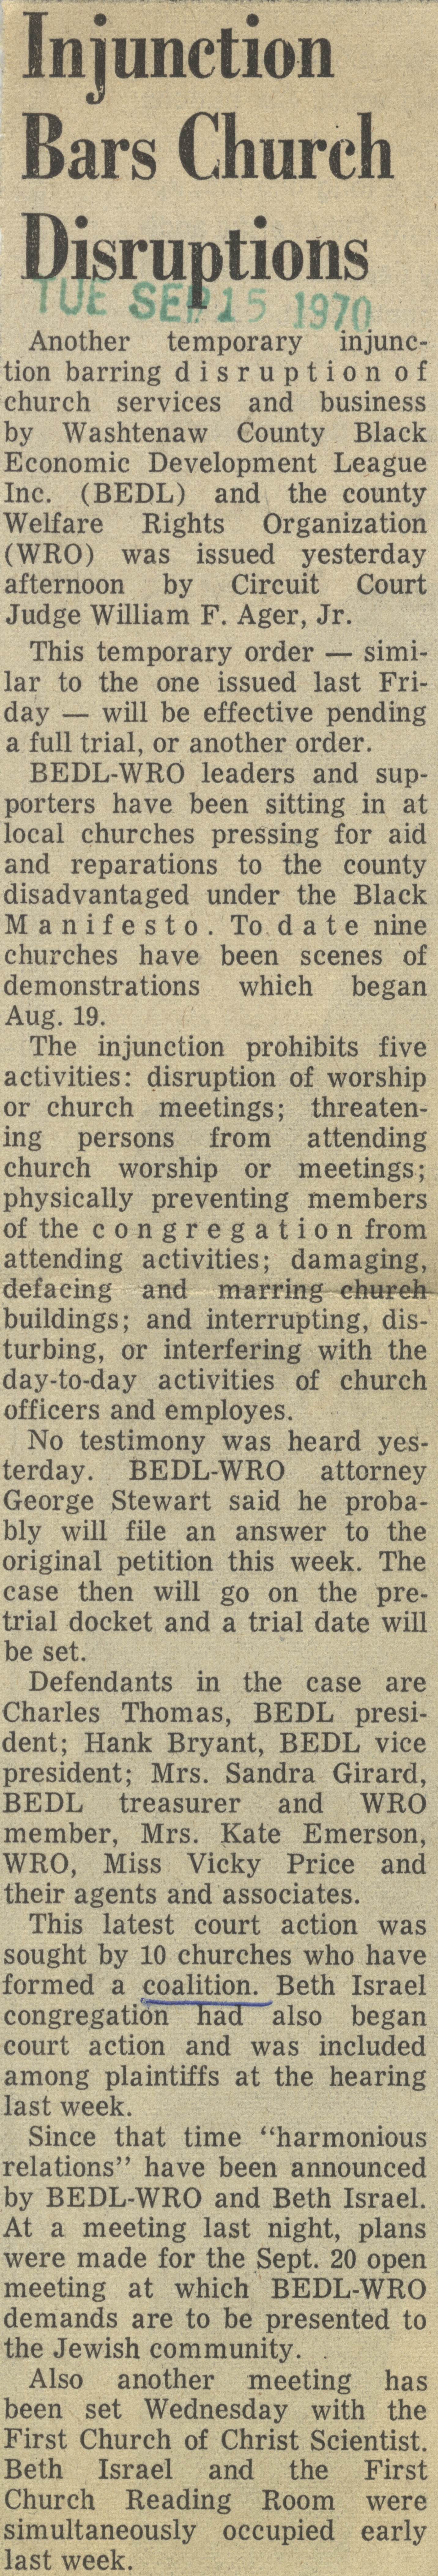 Injunction Bars Church Disruptions image